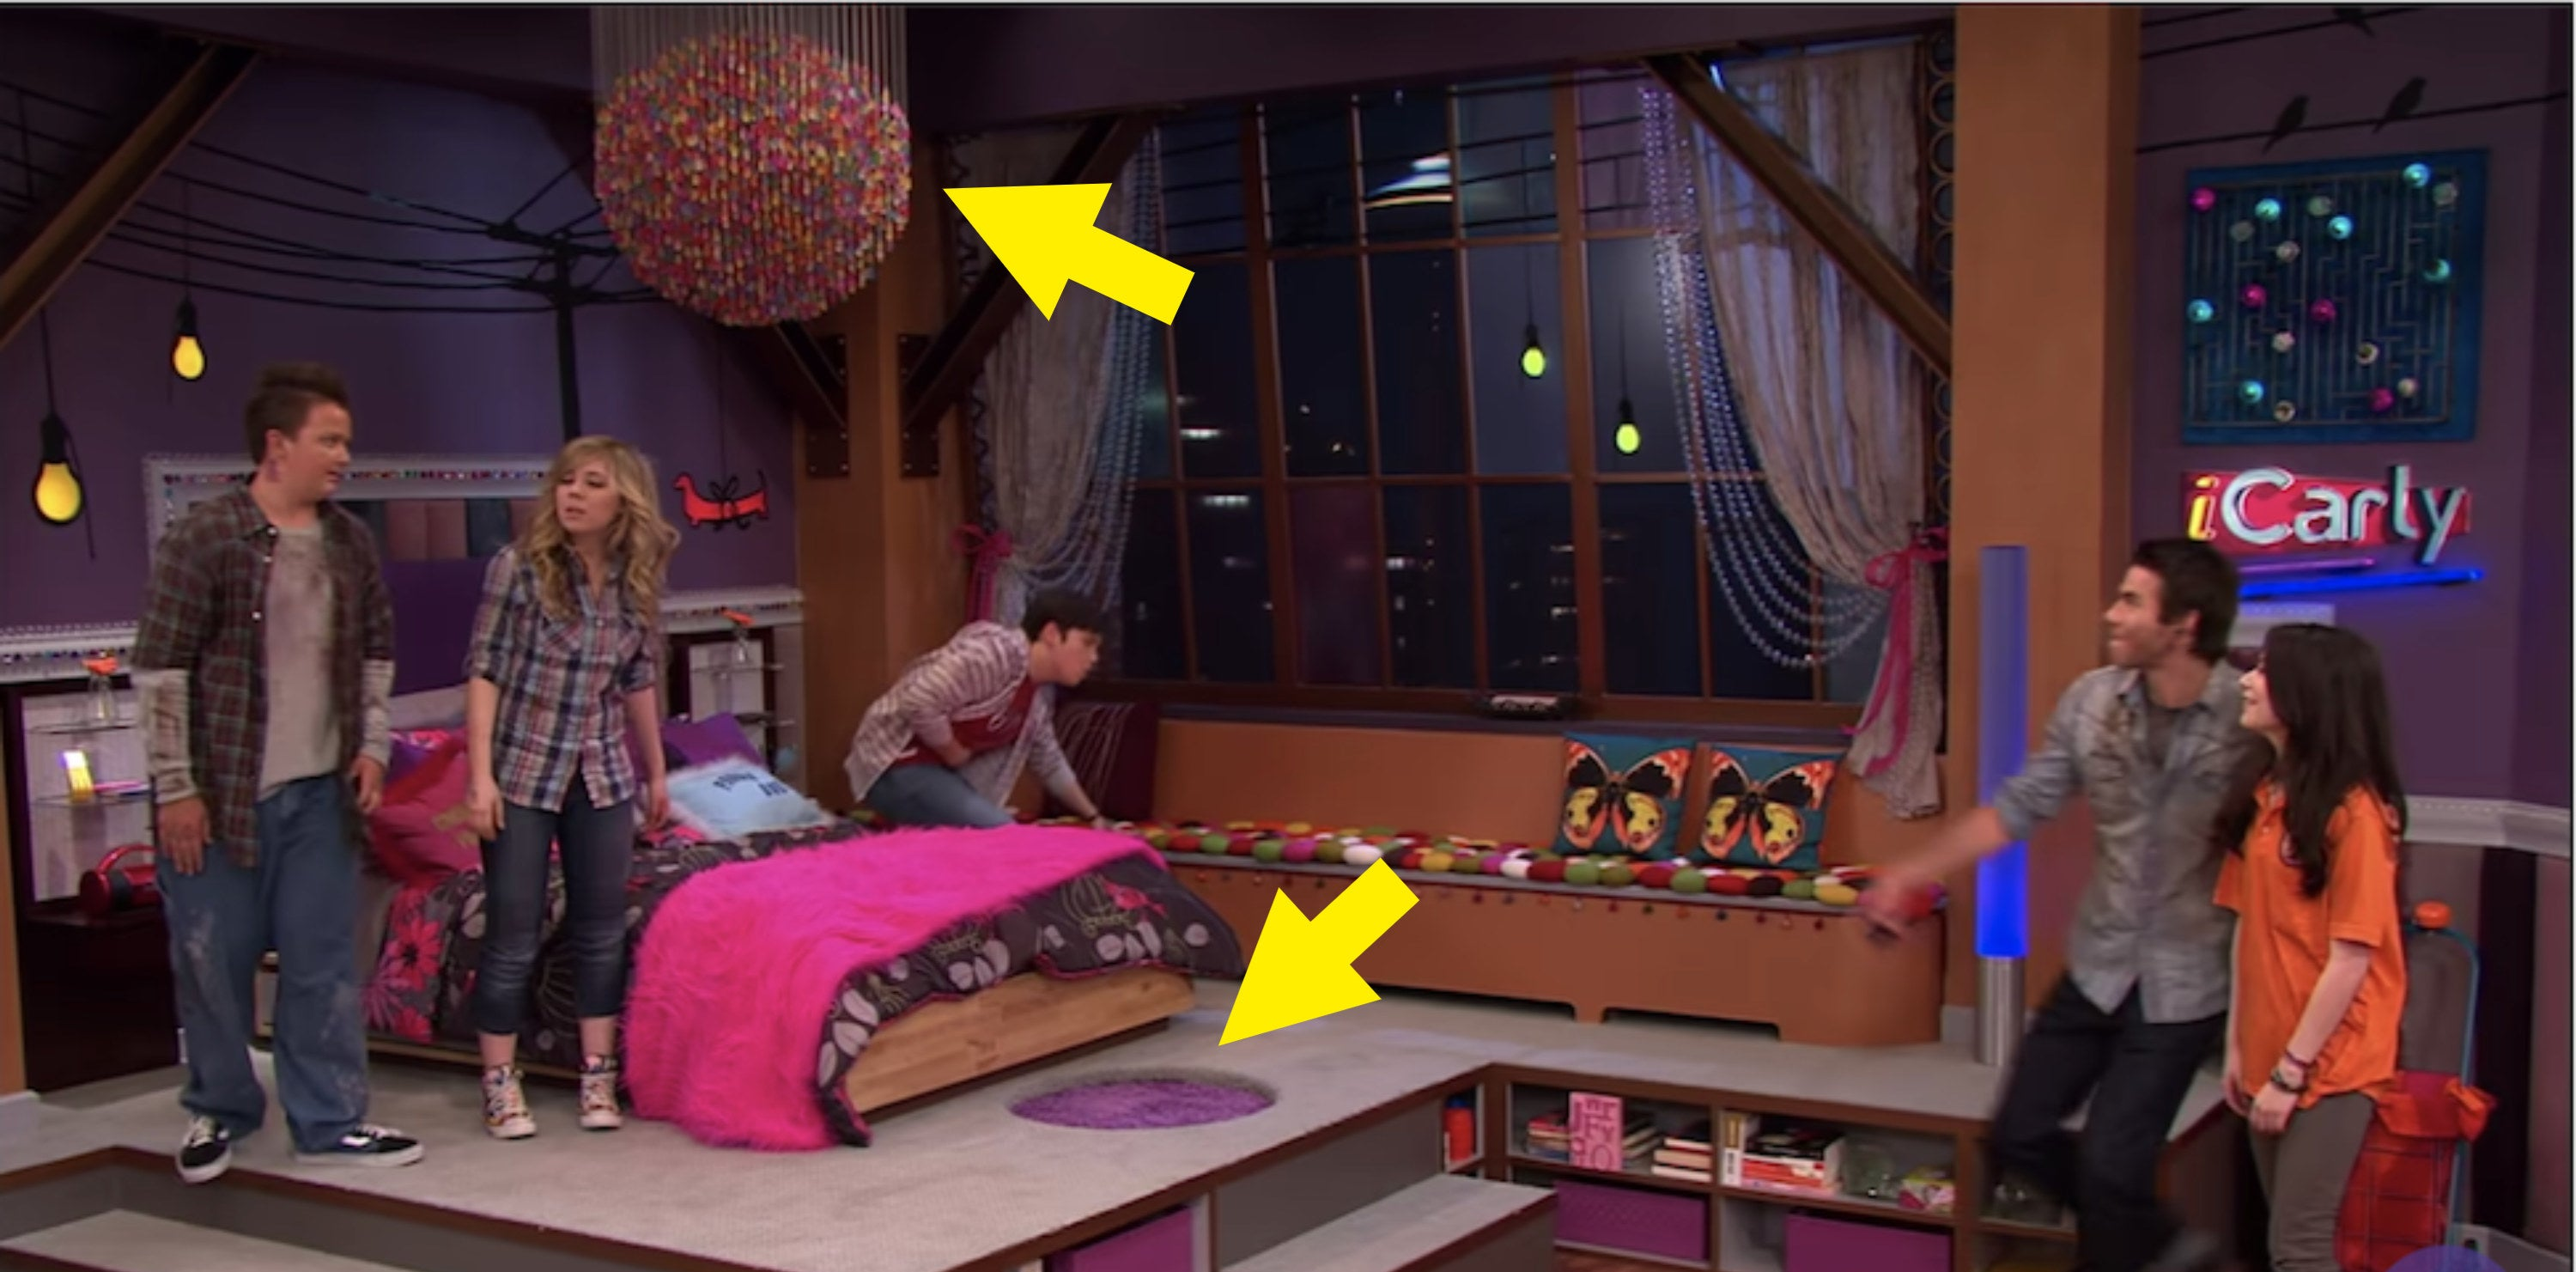 Carly's extravagant redecorated bedroom